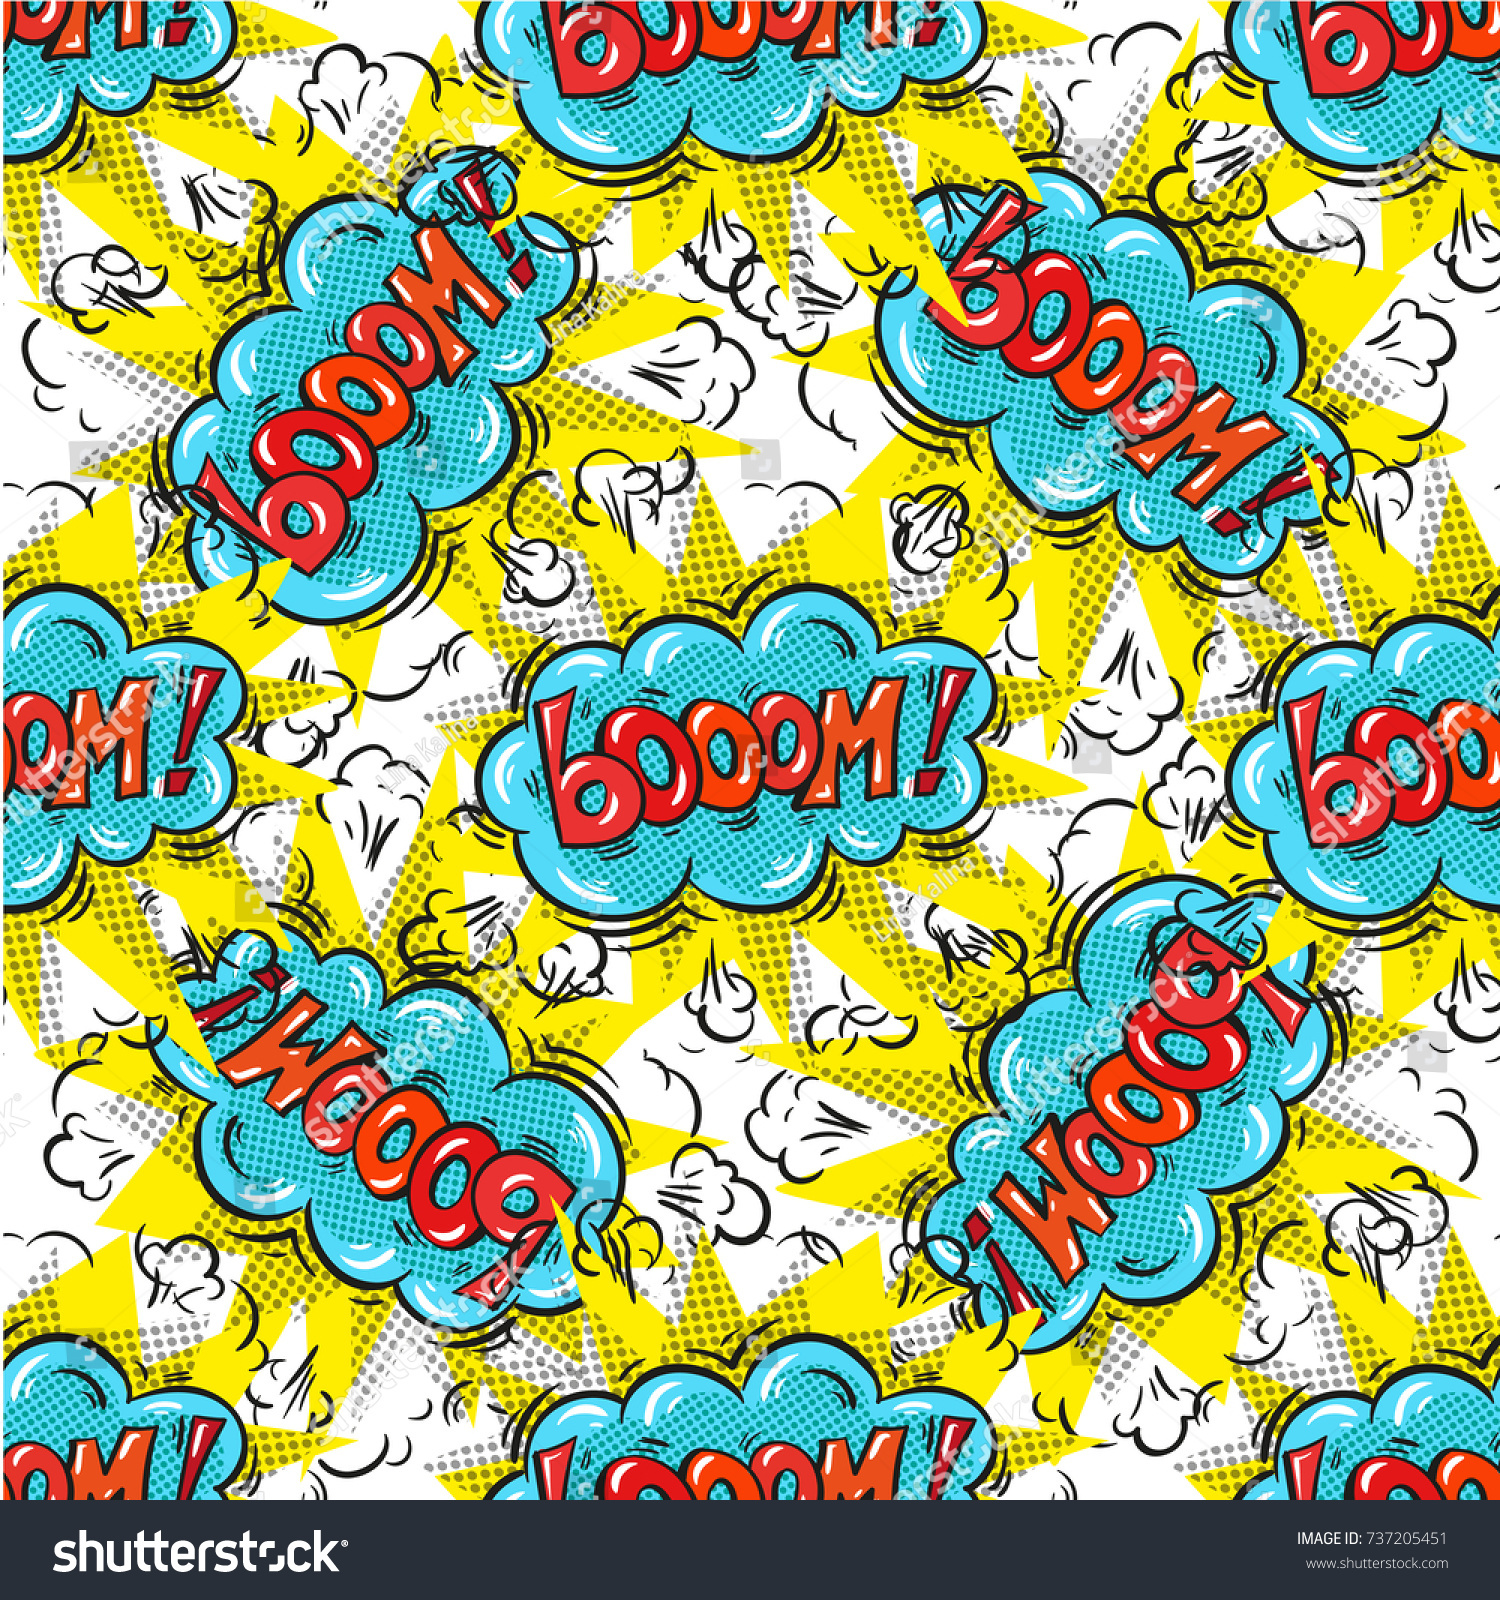 Boom Background Closeout Seamless Pattern Clearance Stock Vector 1500x1600